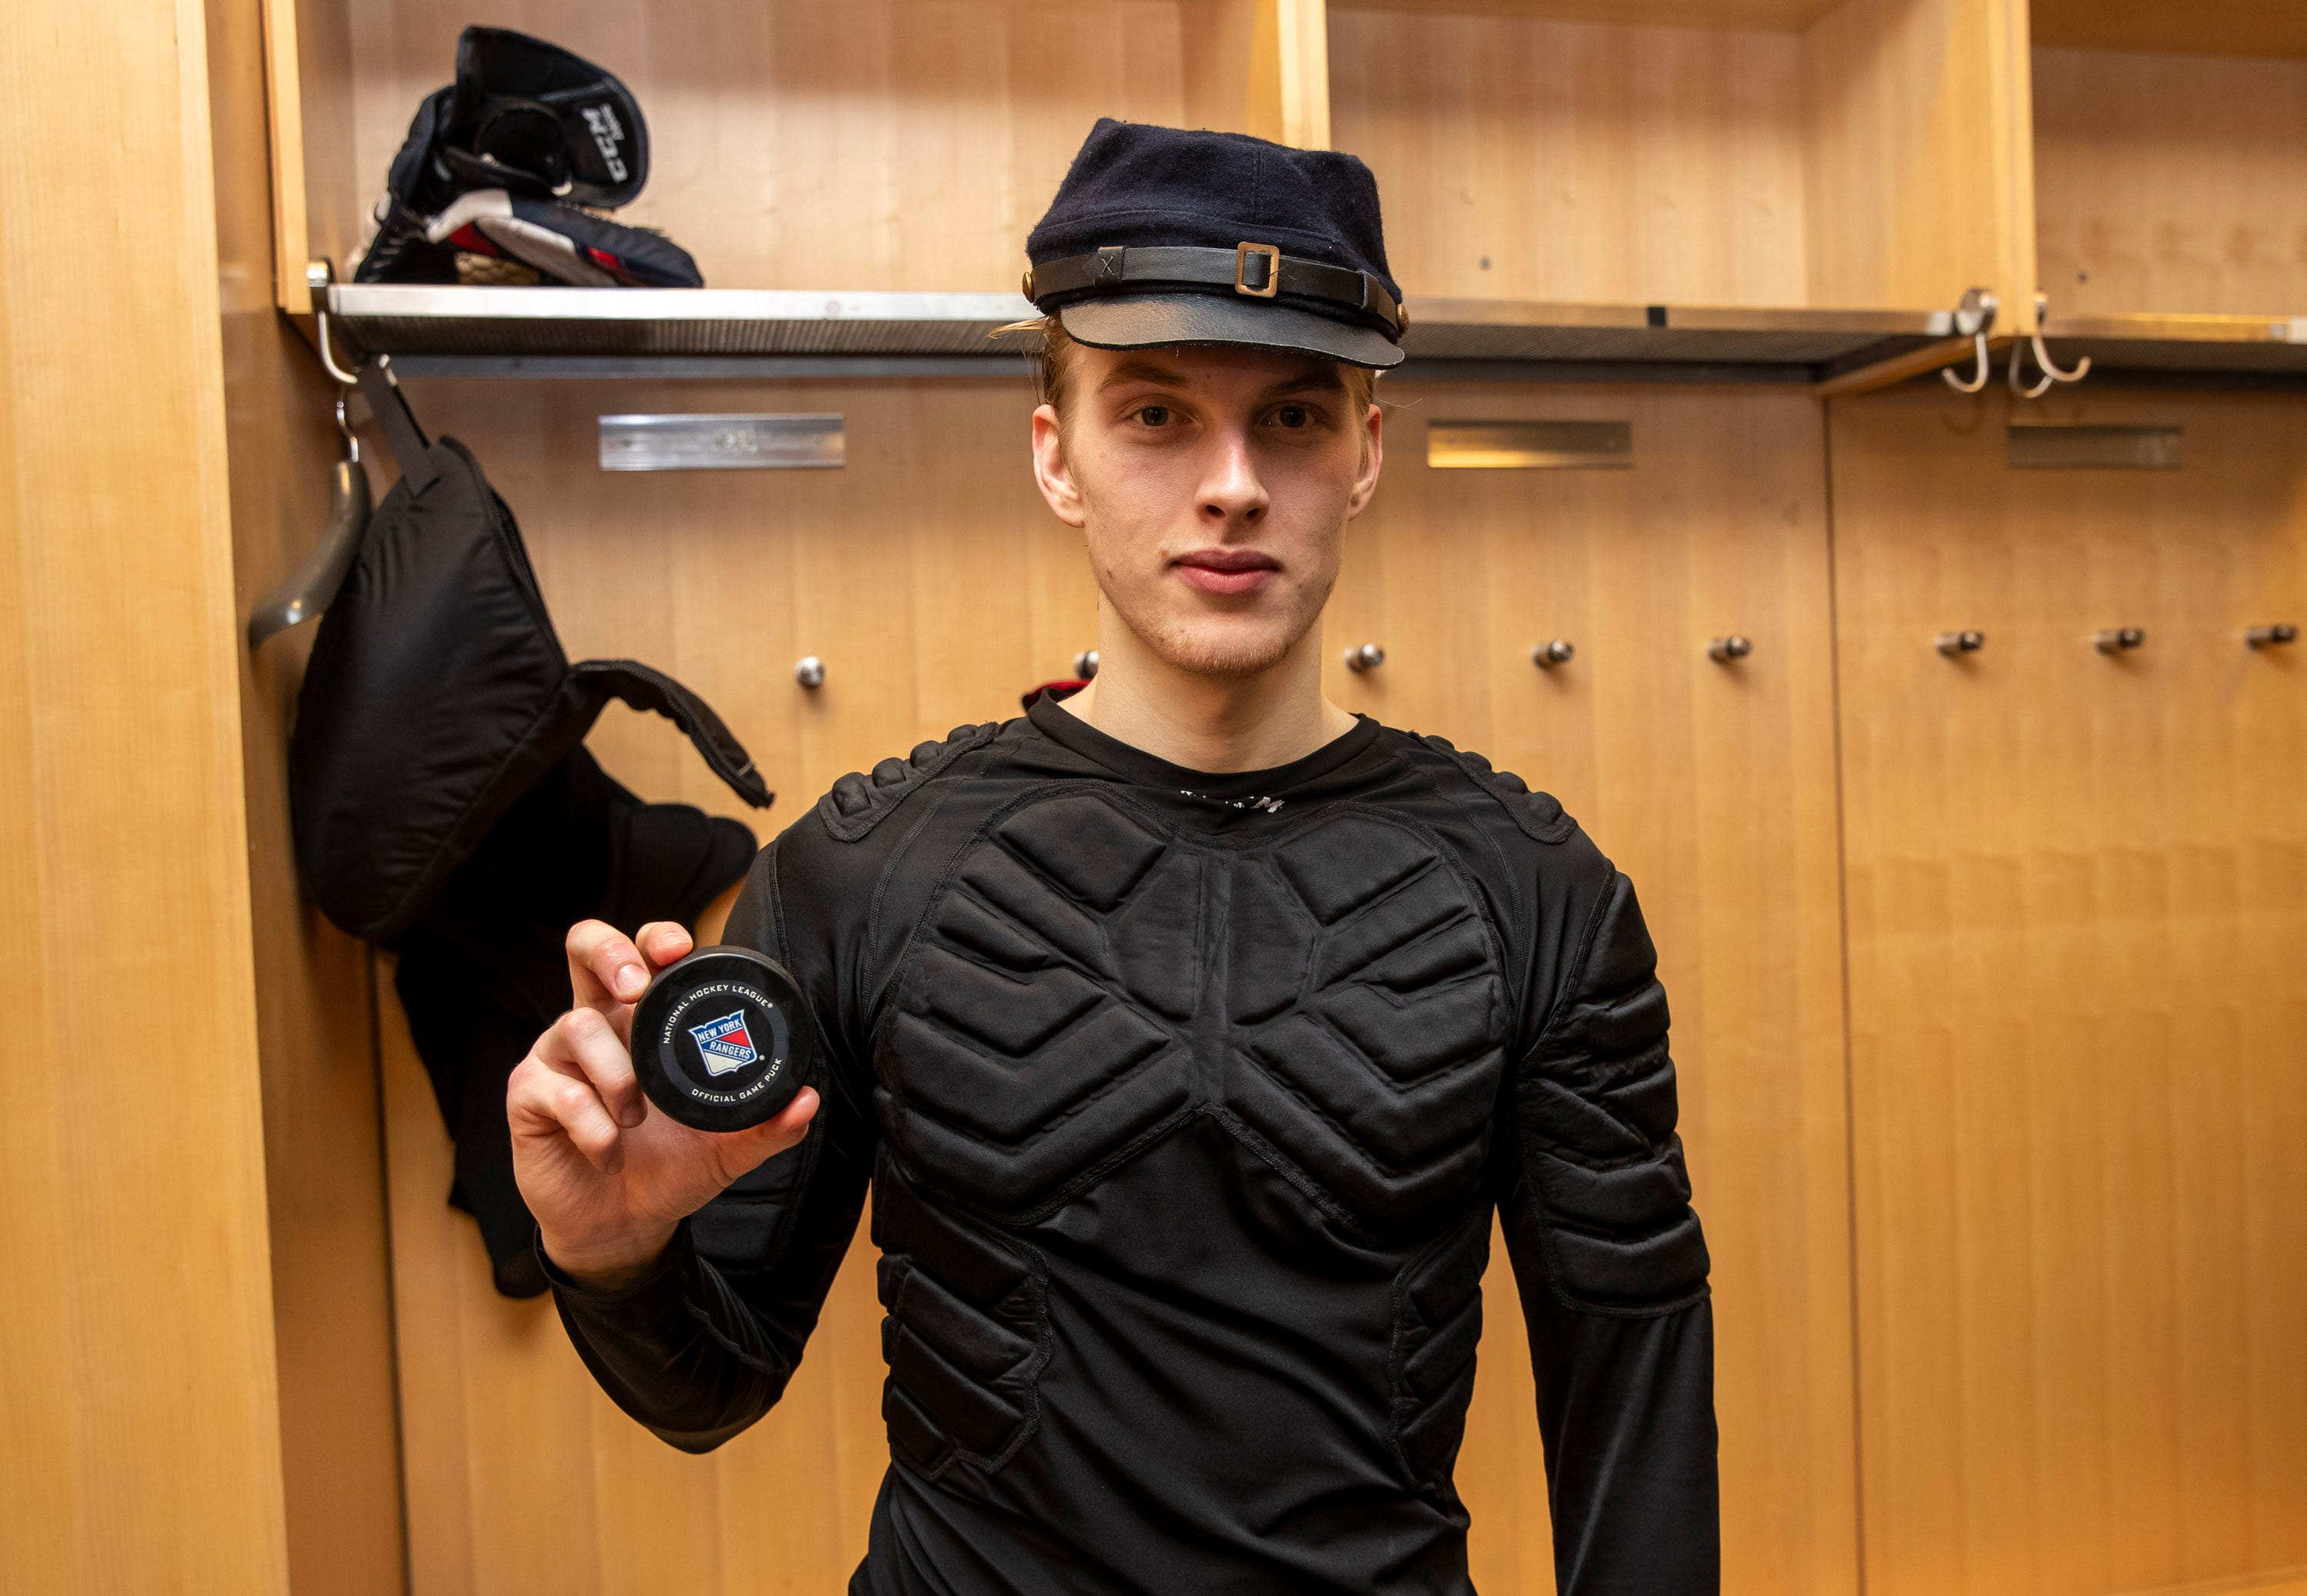 Former Blue Jackets goalie Matiss Kivlenieks poses with the game puck after earning his first NHL victory against the New York Rangers on Jan. 19, 2020 at Madison Square Garden.